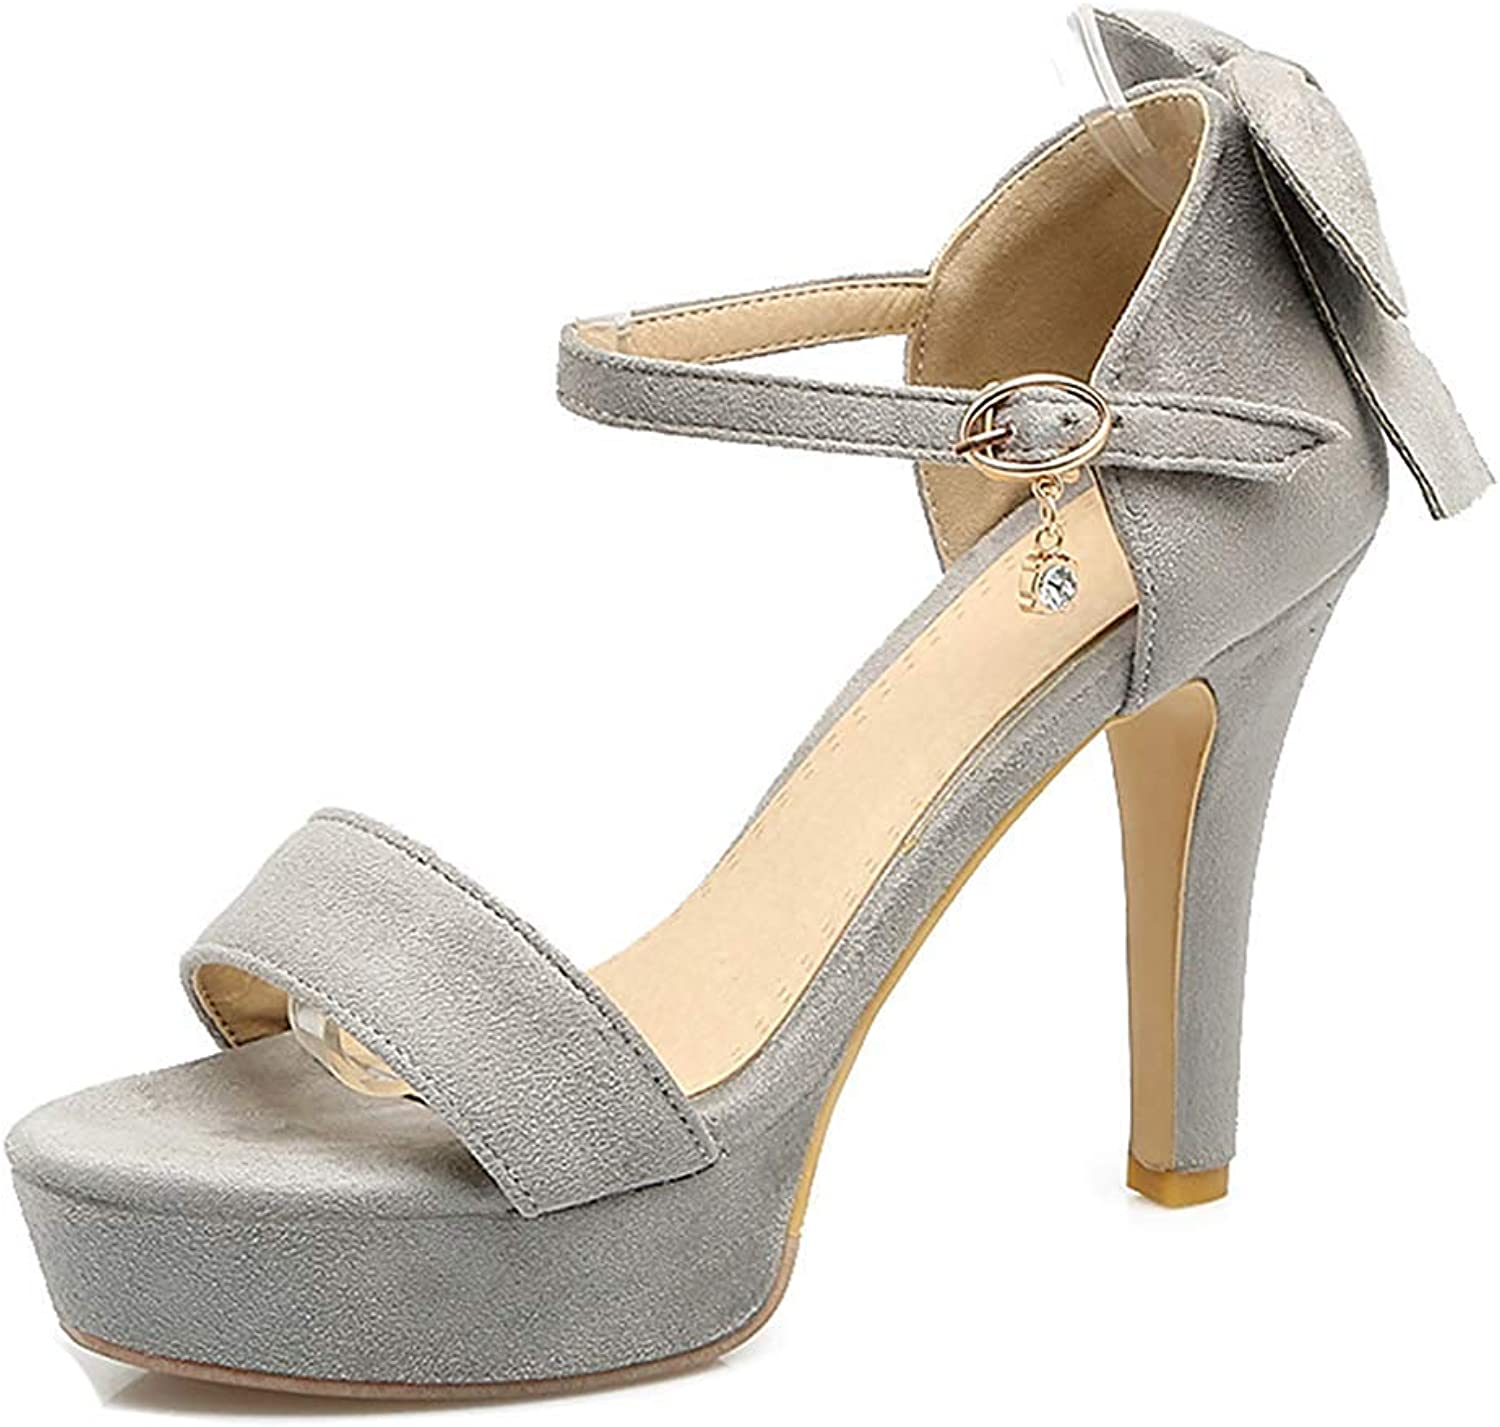 Unm Women's Party Wedding Open Toe Buckled Stiletto High Heel Platform Ankle Strap Sandals with Bow